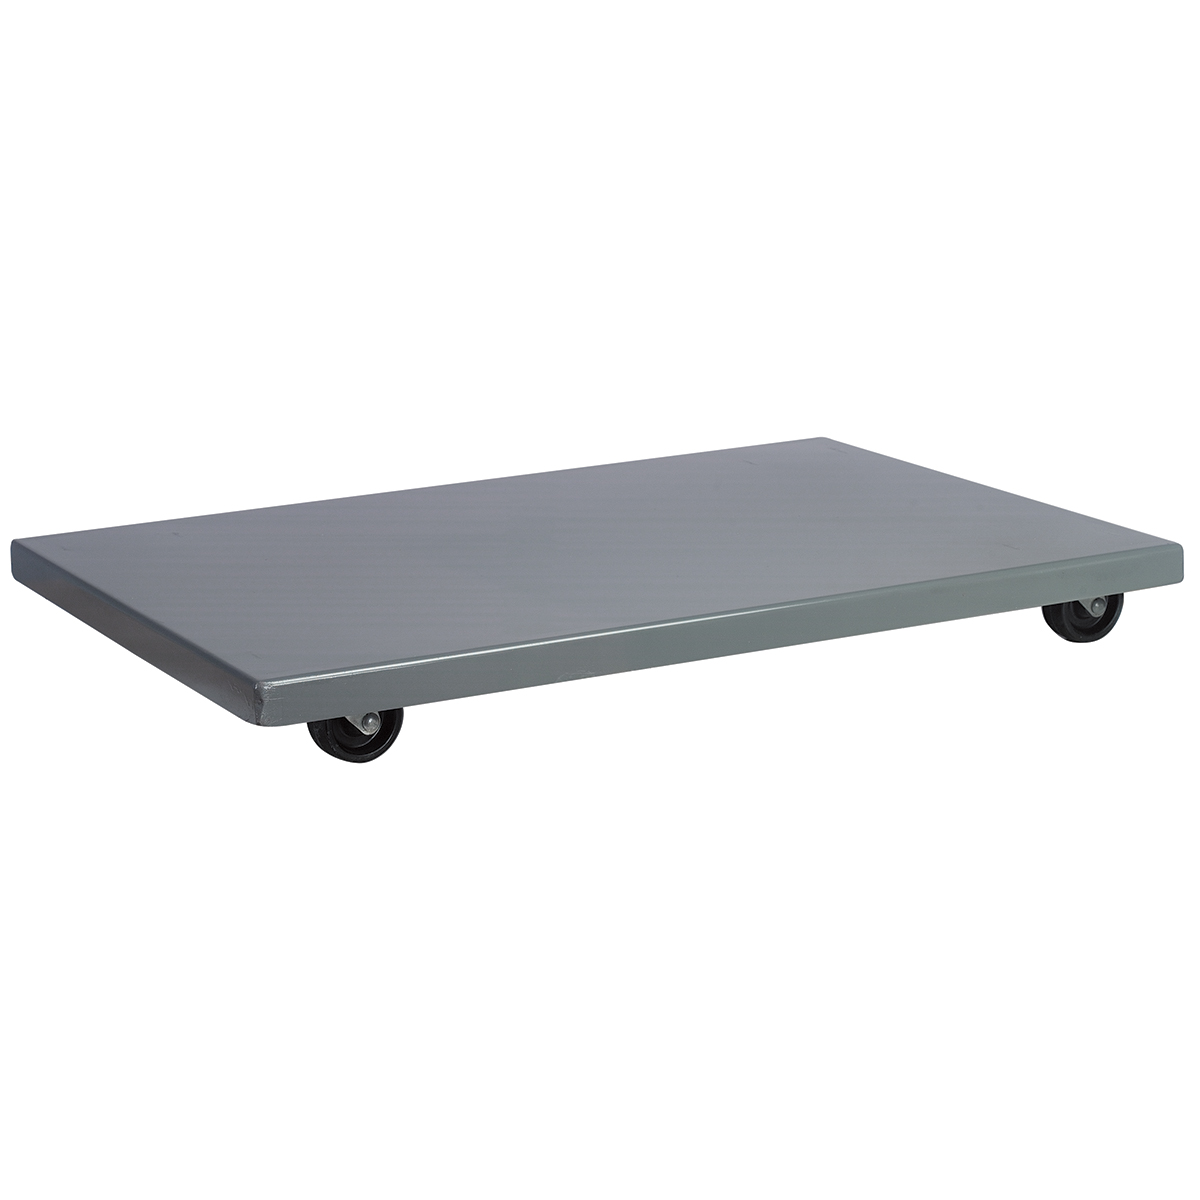 Item DISCONTINUED by Manufacturer.  Steel Dolly, 18x24, N/A4